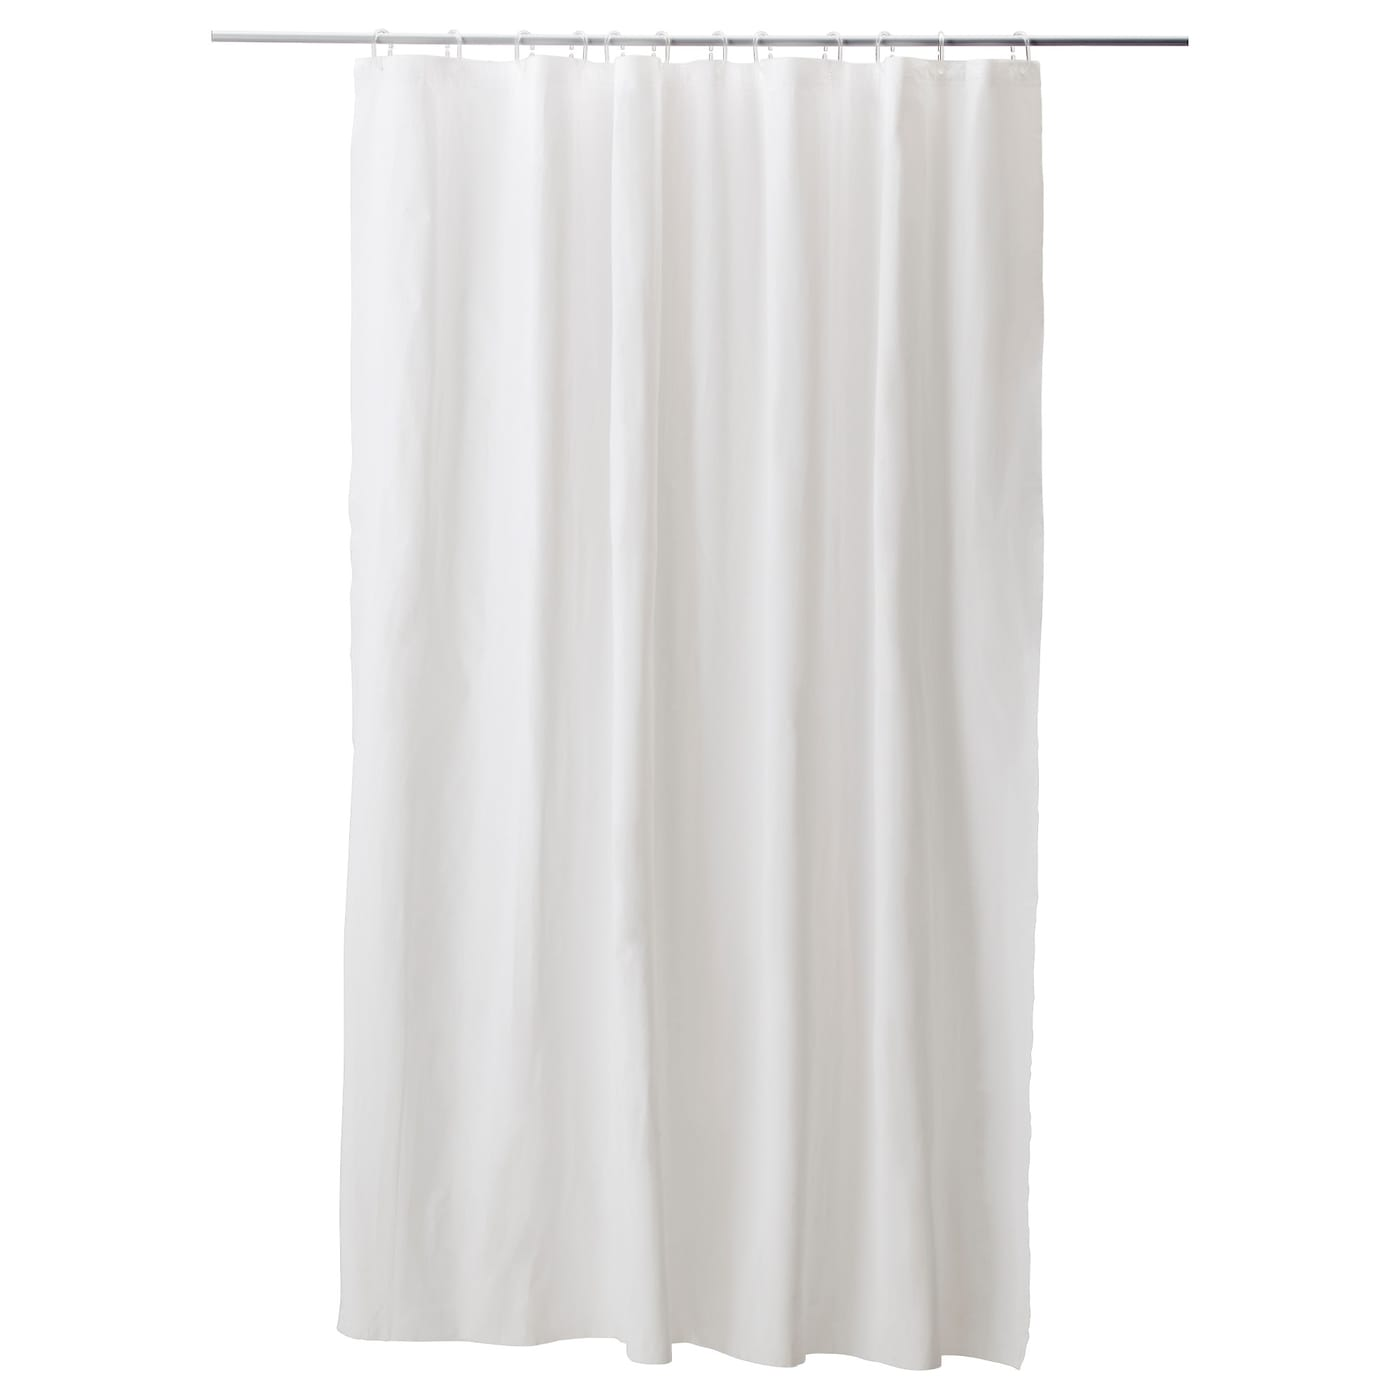 IKEA EGGEGRUND Shower Curtain Can Be Easily Cut To The Desired Length Zoom In